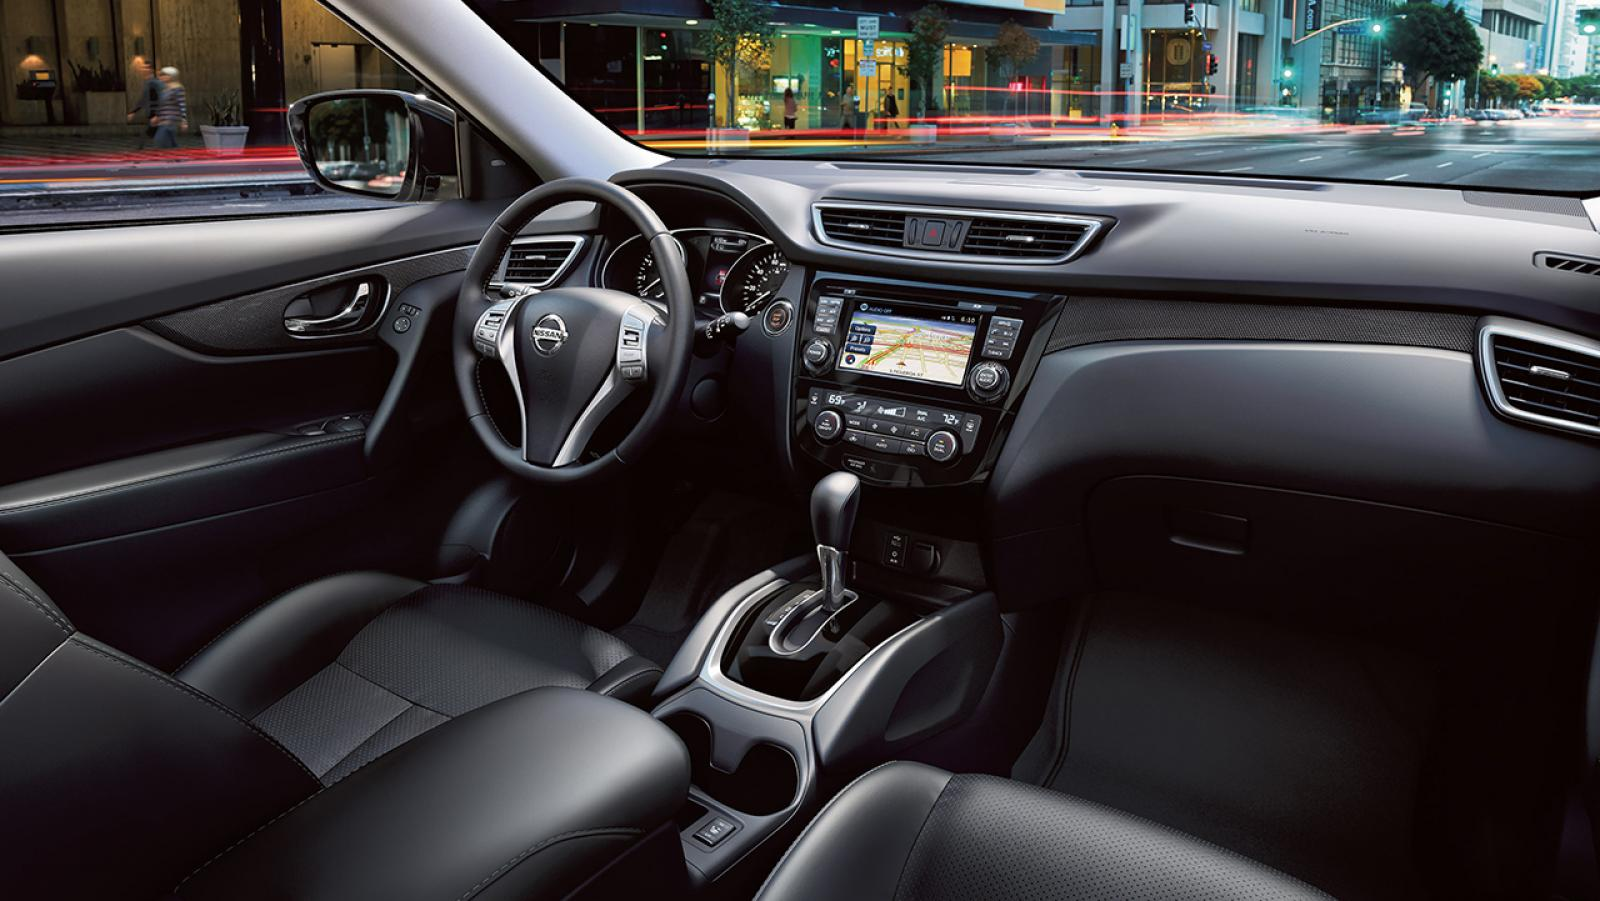 2015 nissan rogue information and photos zombiedrive 800 1024 1280 1600 origin 2015 nissan vanachro Image collections